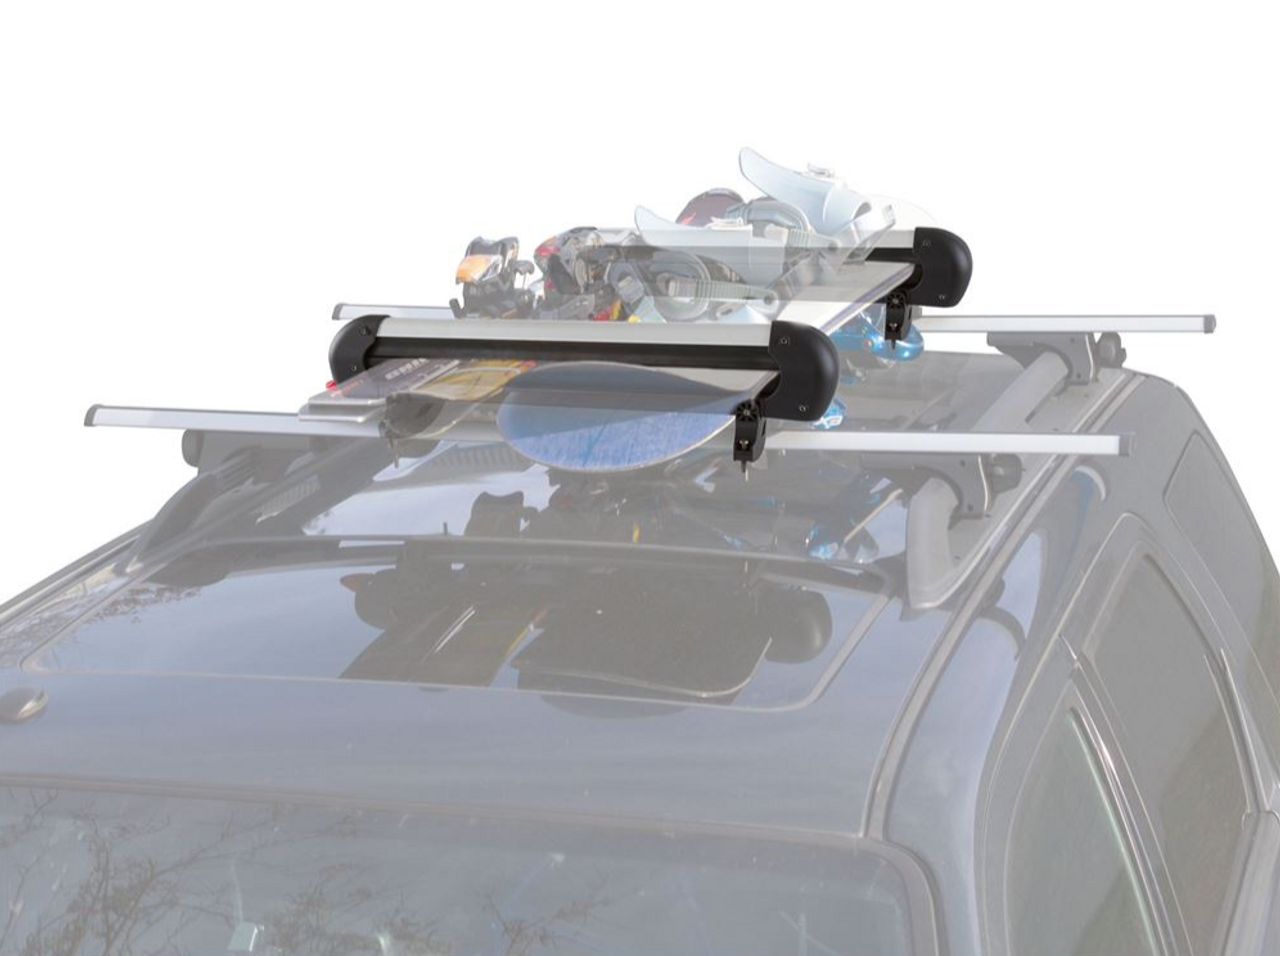 Roof Rack Snowboard Carrier | Locking Roof Rack